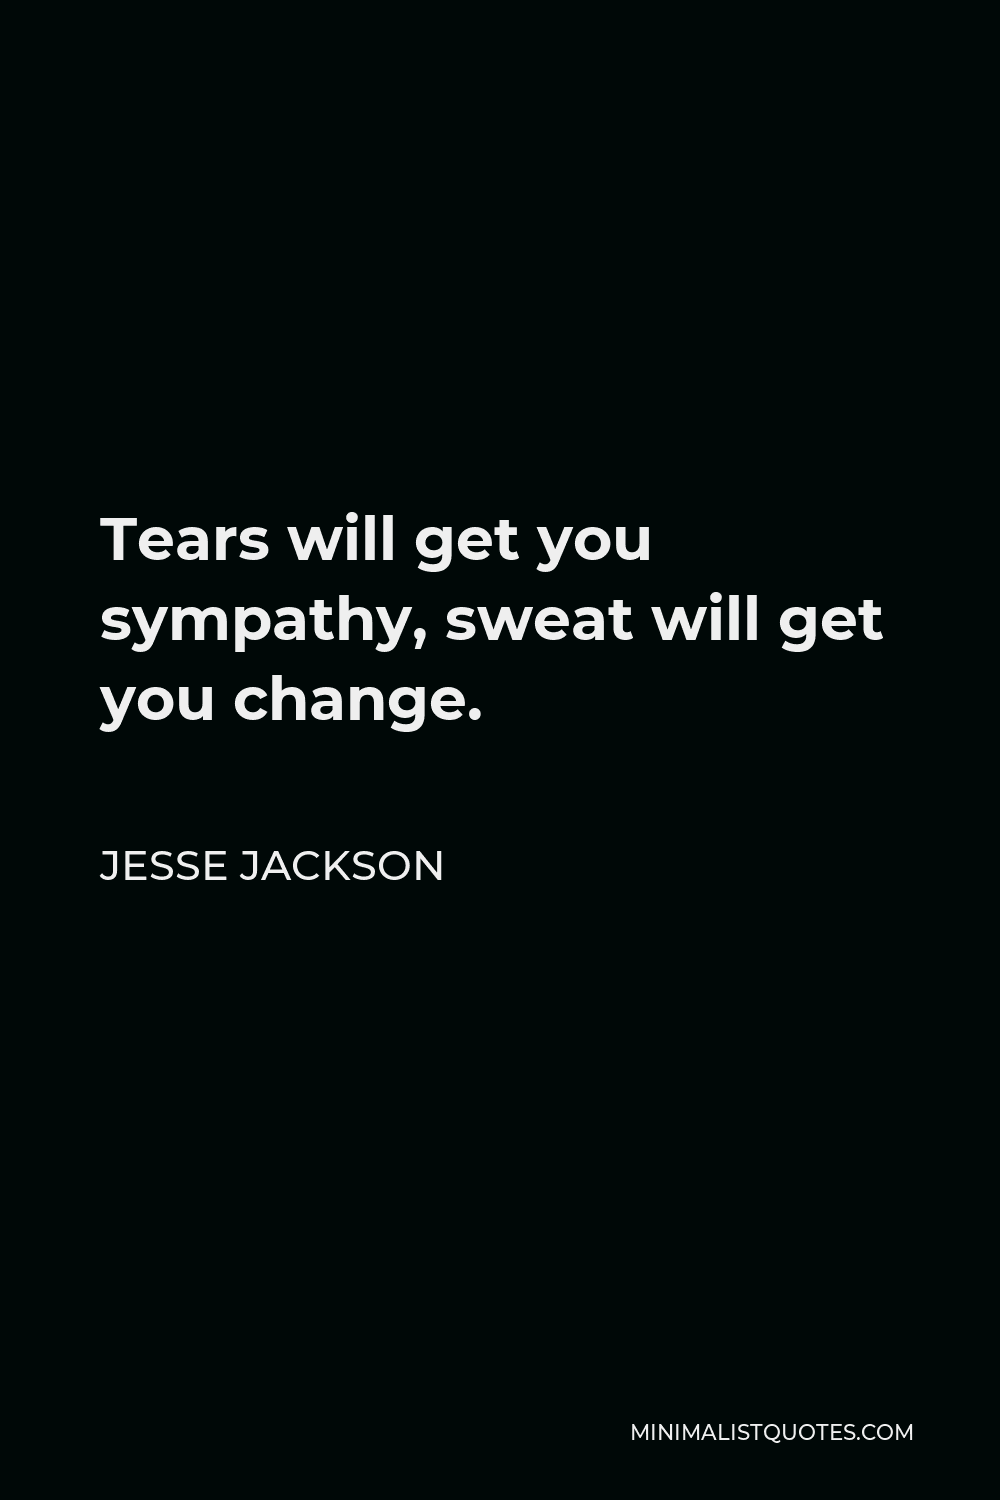 Jesse Jackson Quote - Tears will get you sympathy, sweat will get you change.